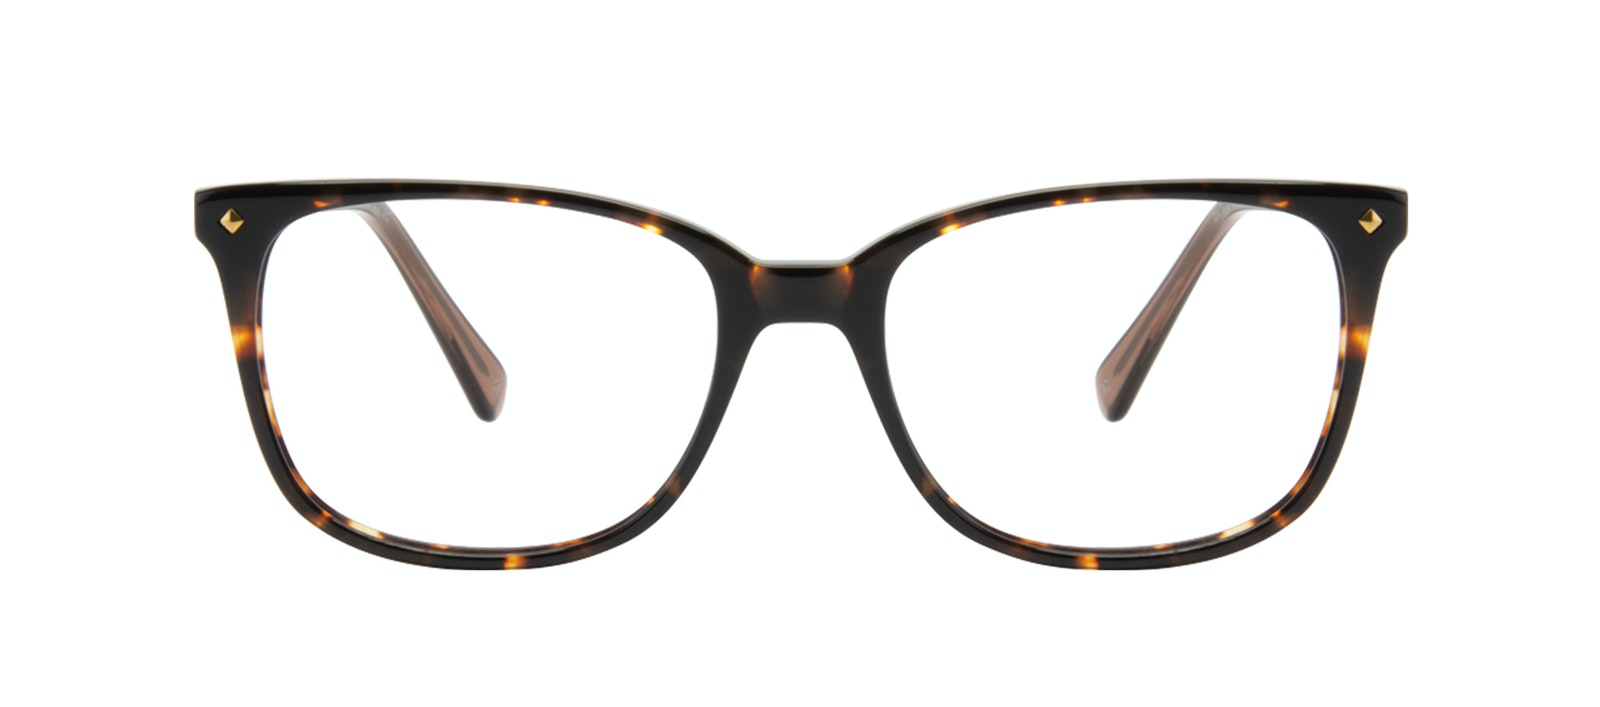 Affordable Fashion Glasses Rectangle Square Eyeglasses Women Refine Tortoise Front